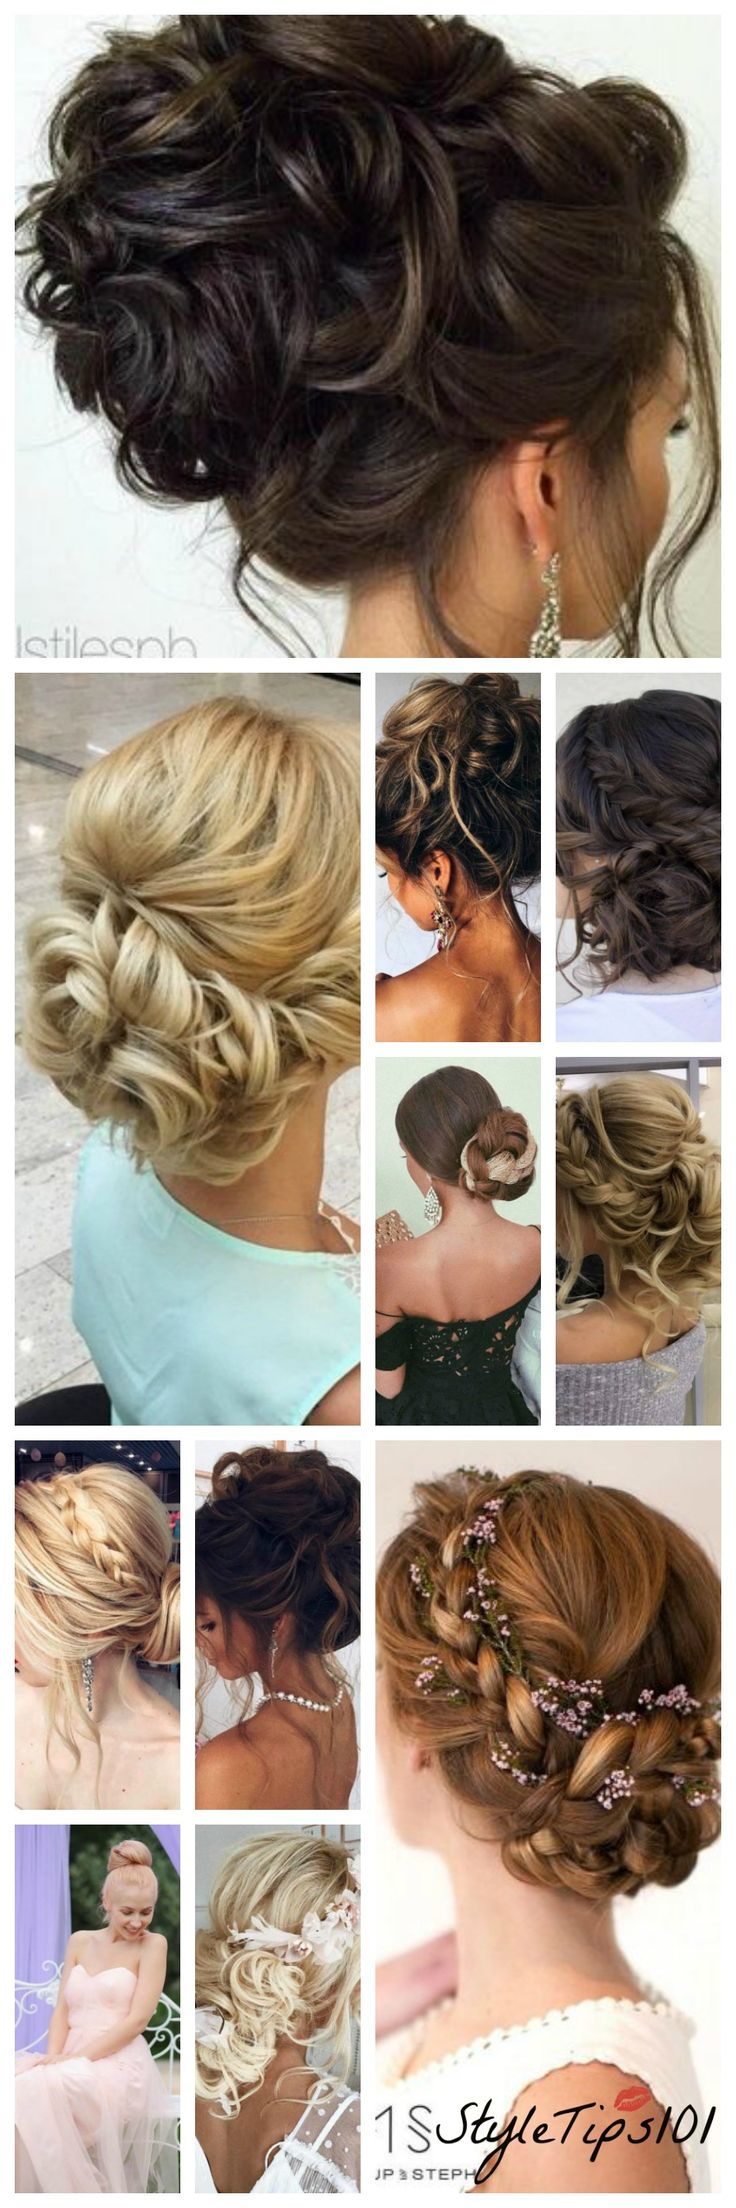 best 25+ cute prom hairstyles ideas on pinterest | cute hairstyles